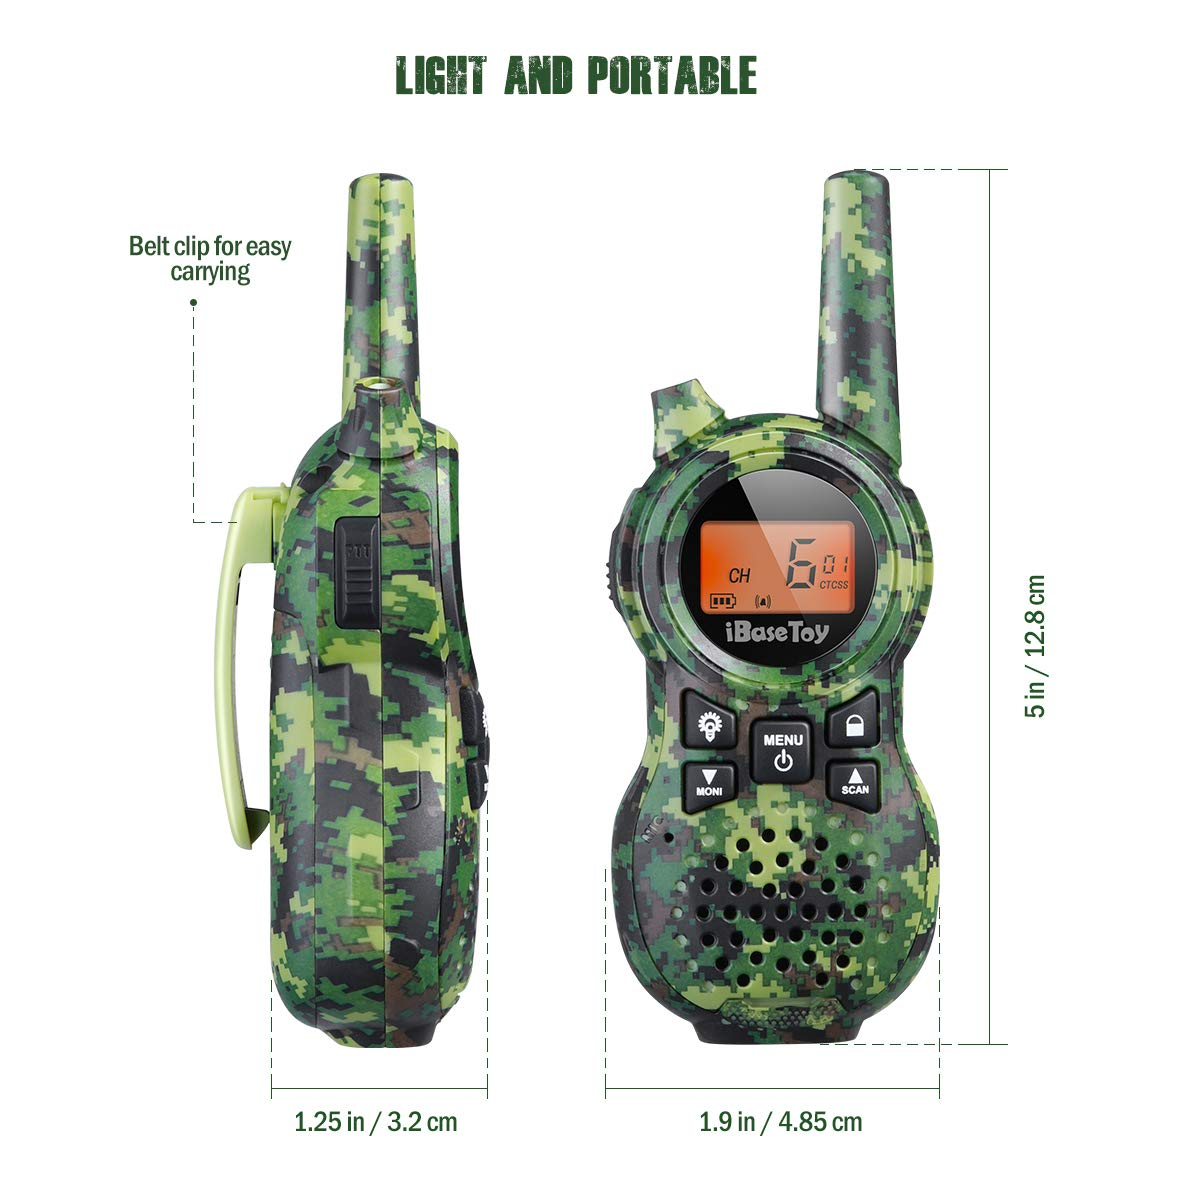 iBaseToy Walkie Talkies for Kids, Rechargeable Walkie Talkies with 22 Channels, 4-Miles Range Radio with Flashlight, LCD Screen and Charging line for Outdoor Adventures, Camping, Hiking - 2 Pack by iBaseToy (Image #7)